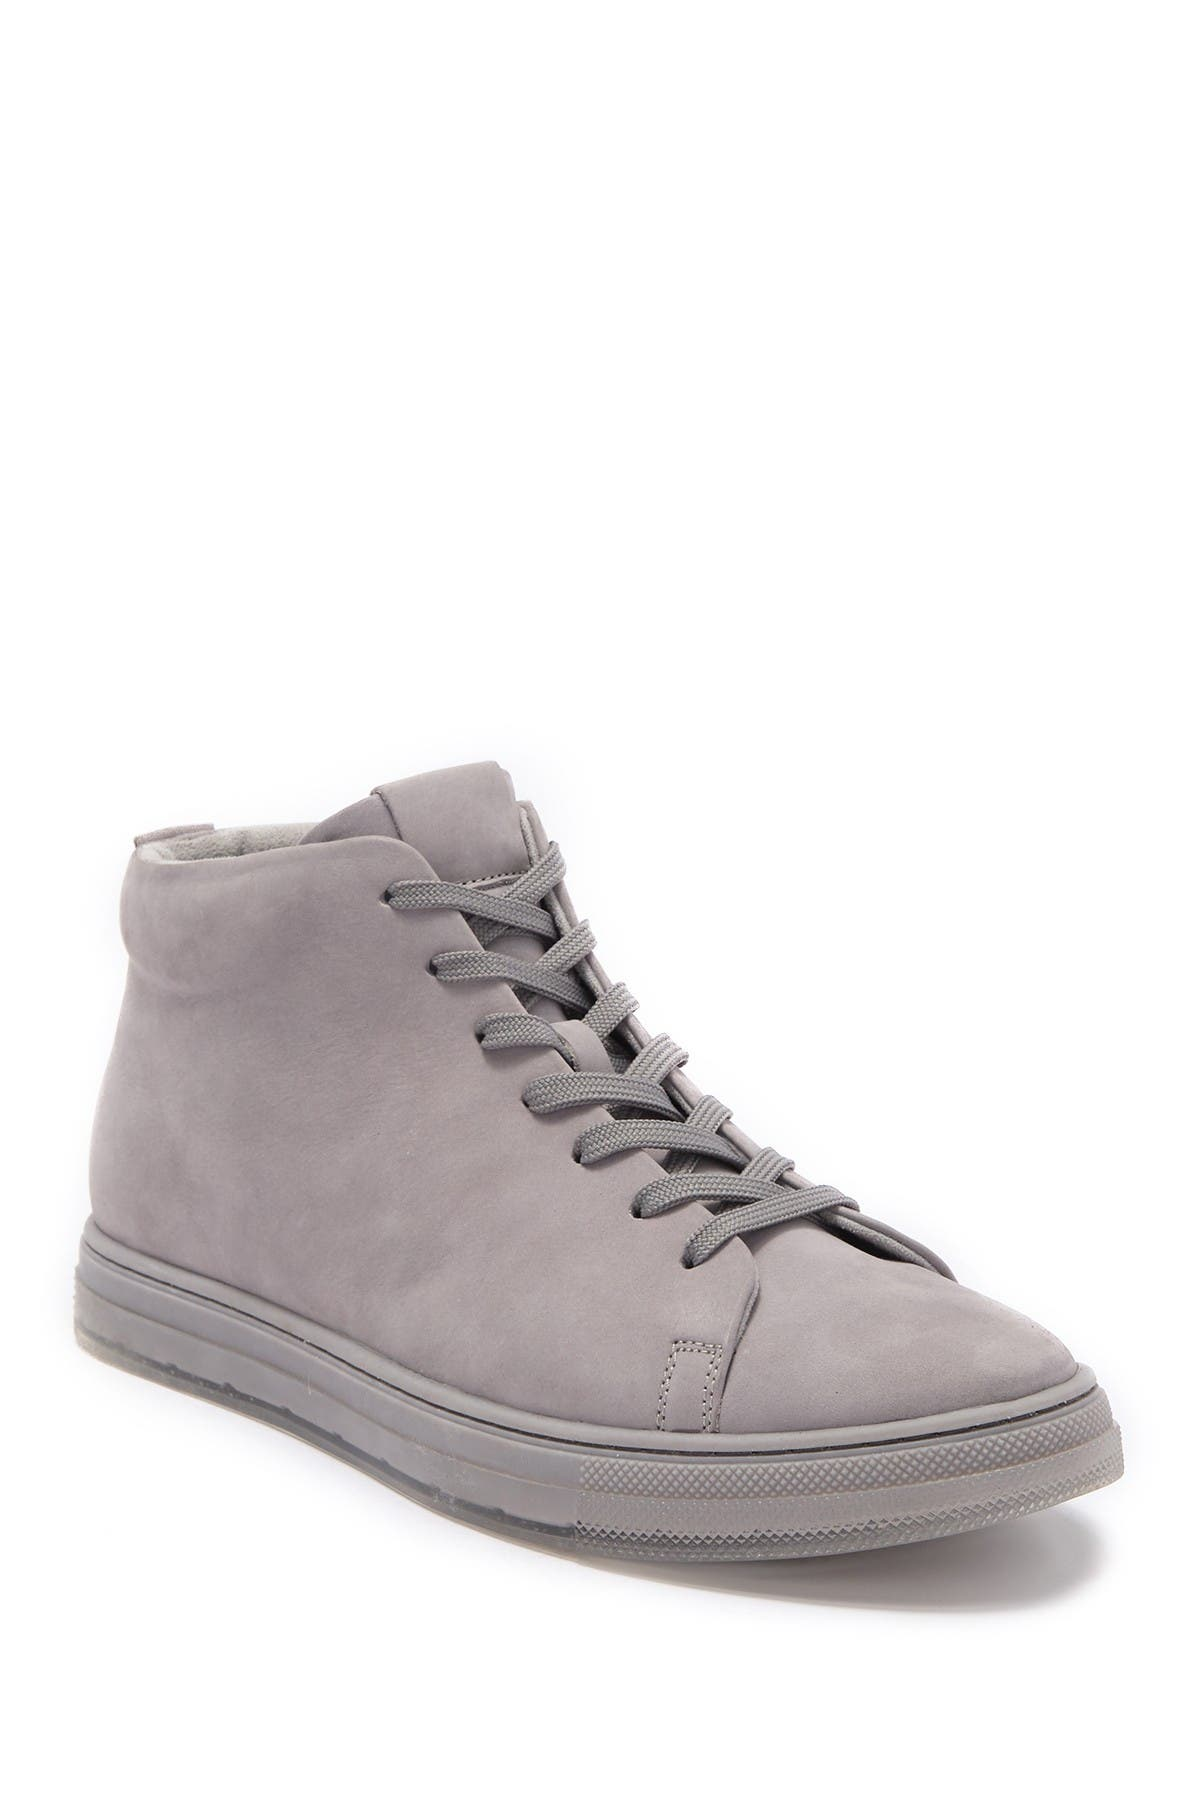 Kenneth Cole New York | Colvin Mid